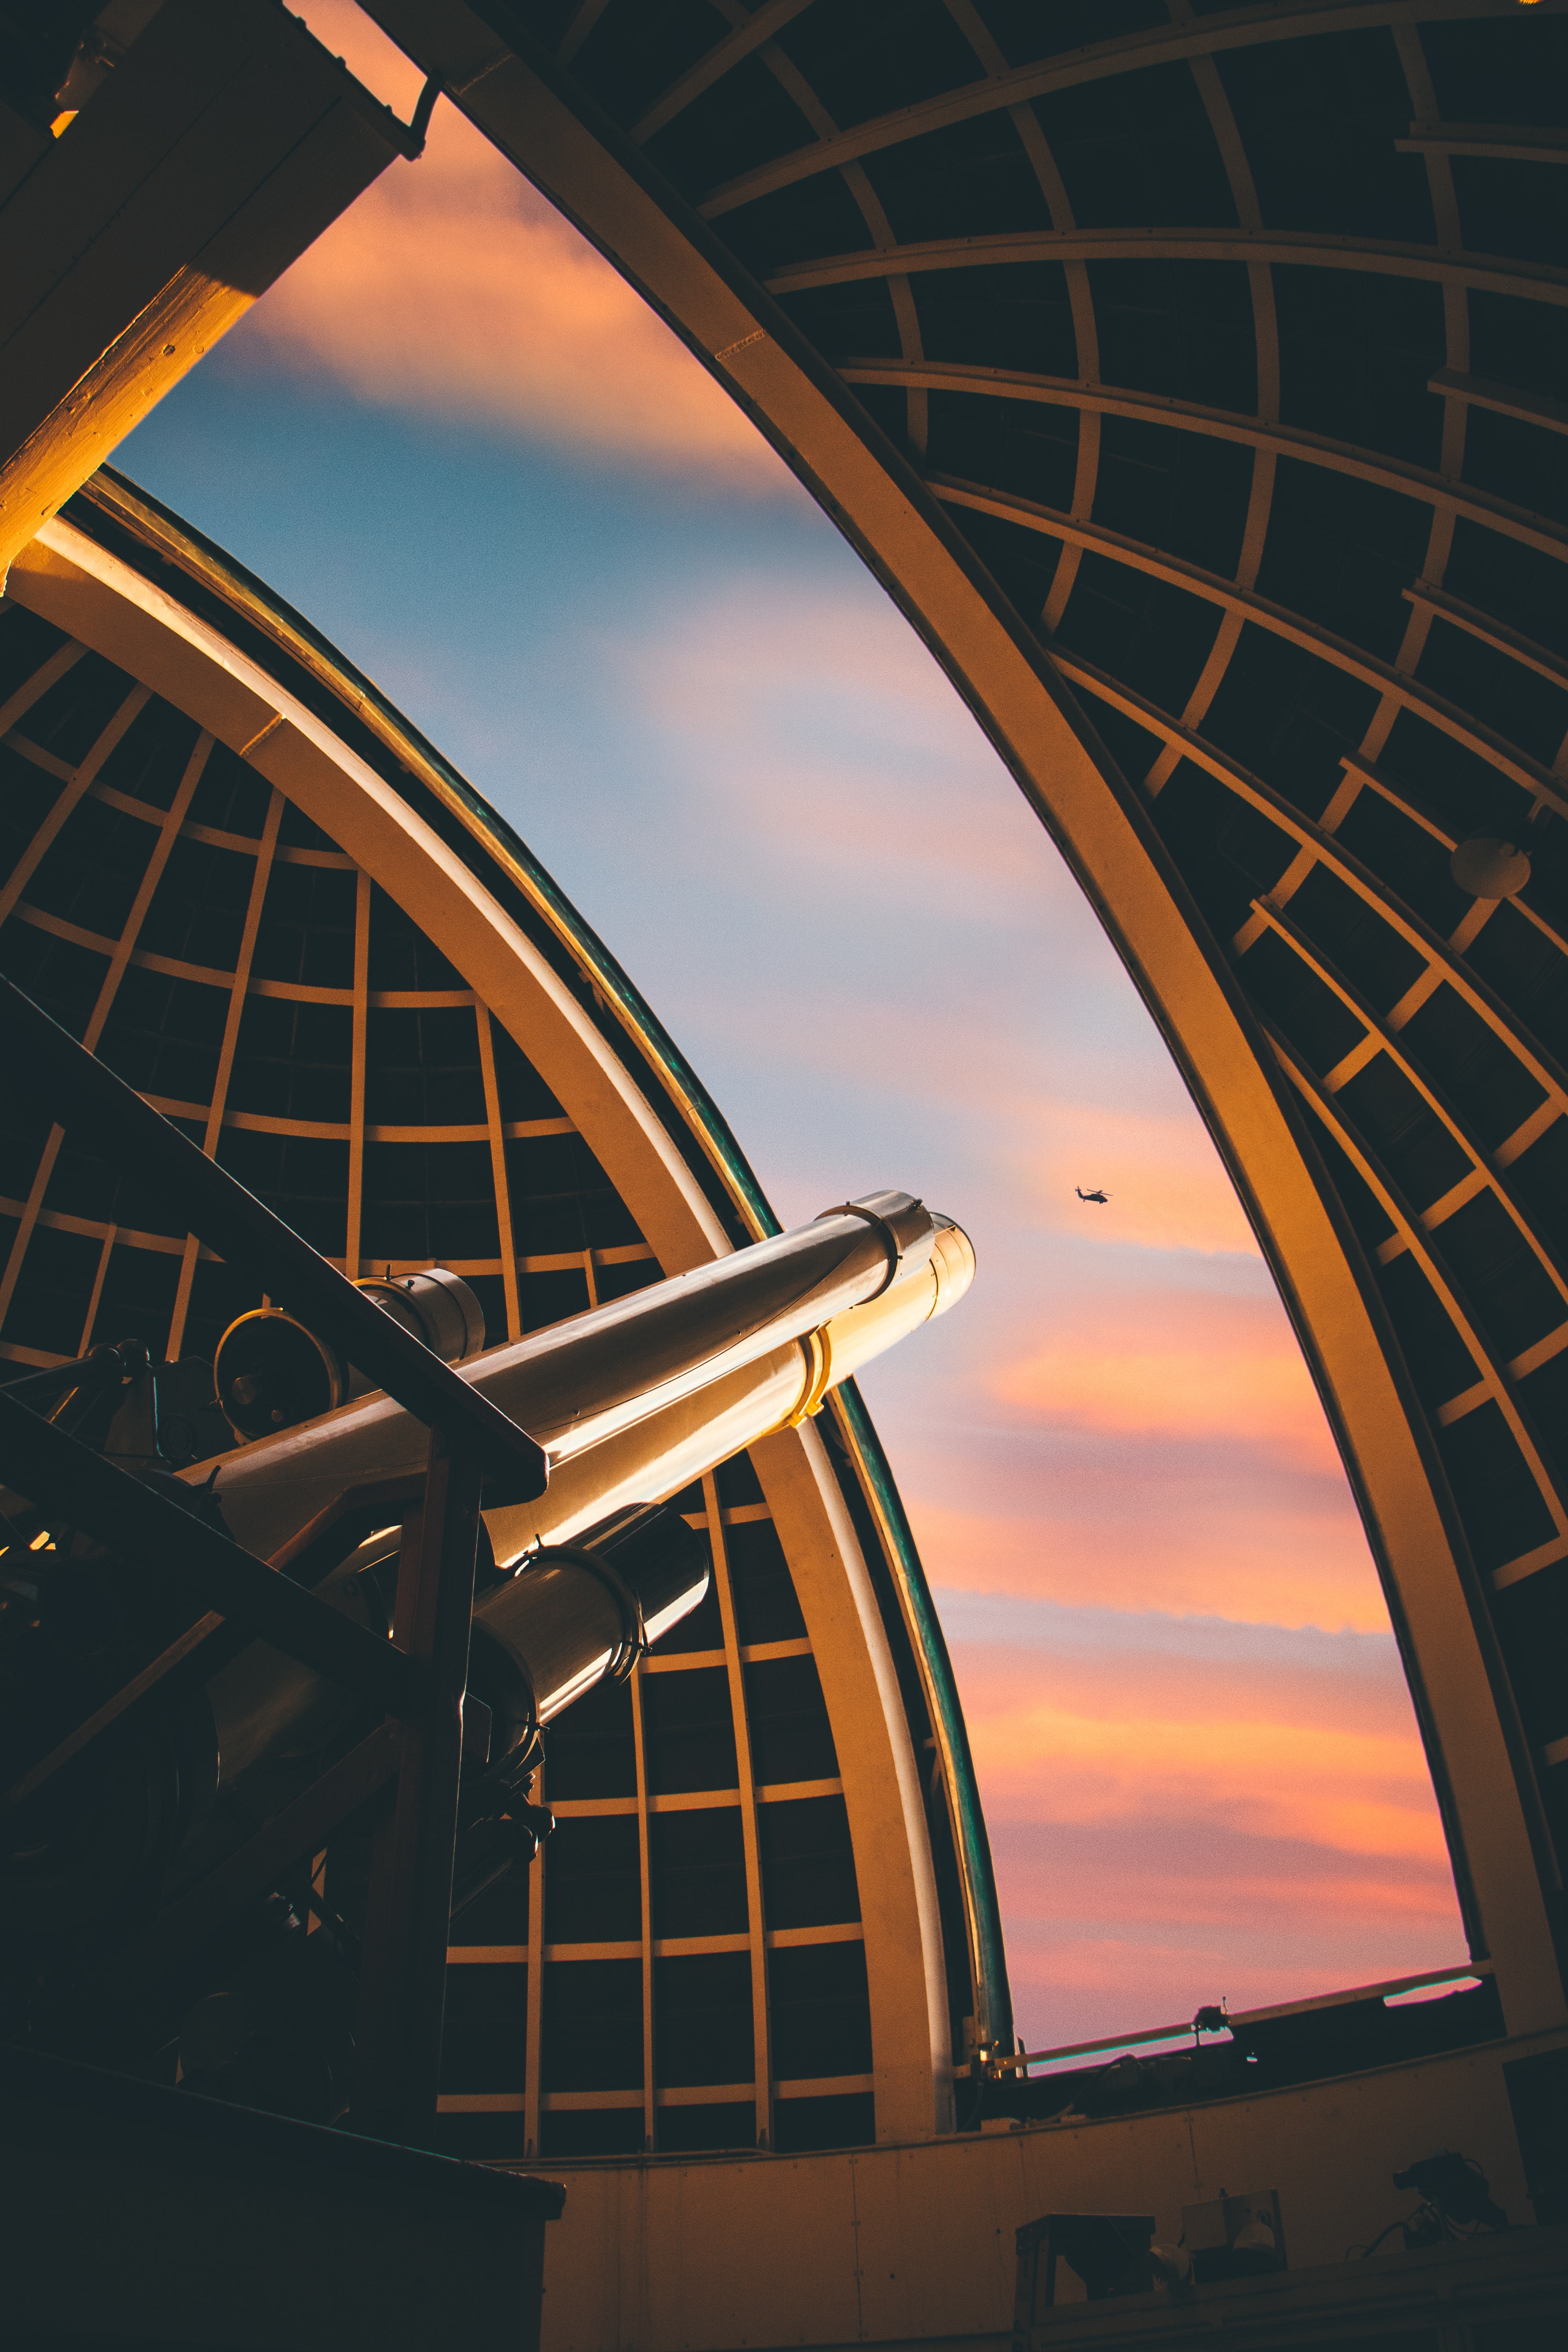 telescope pointed at helicopter on mid air